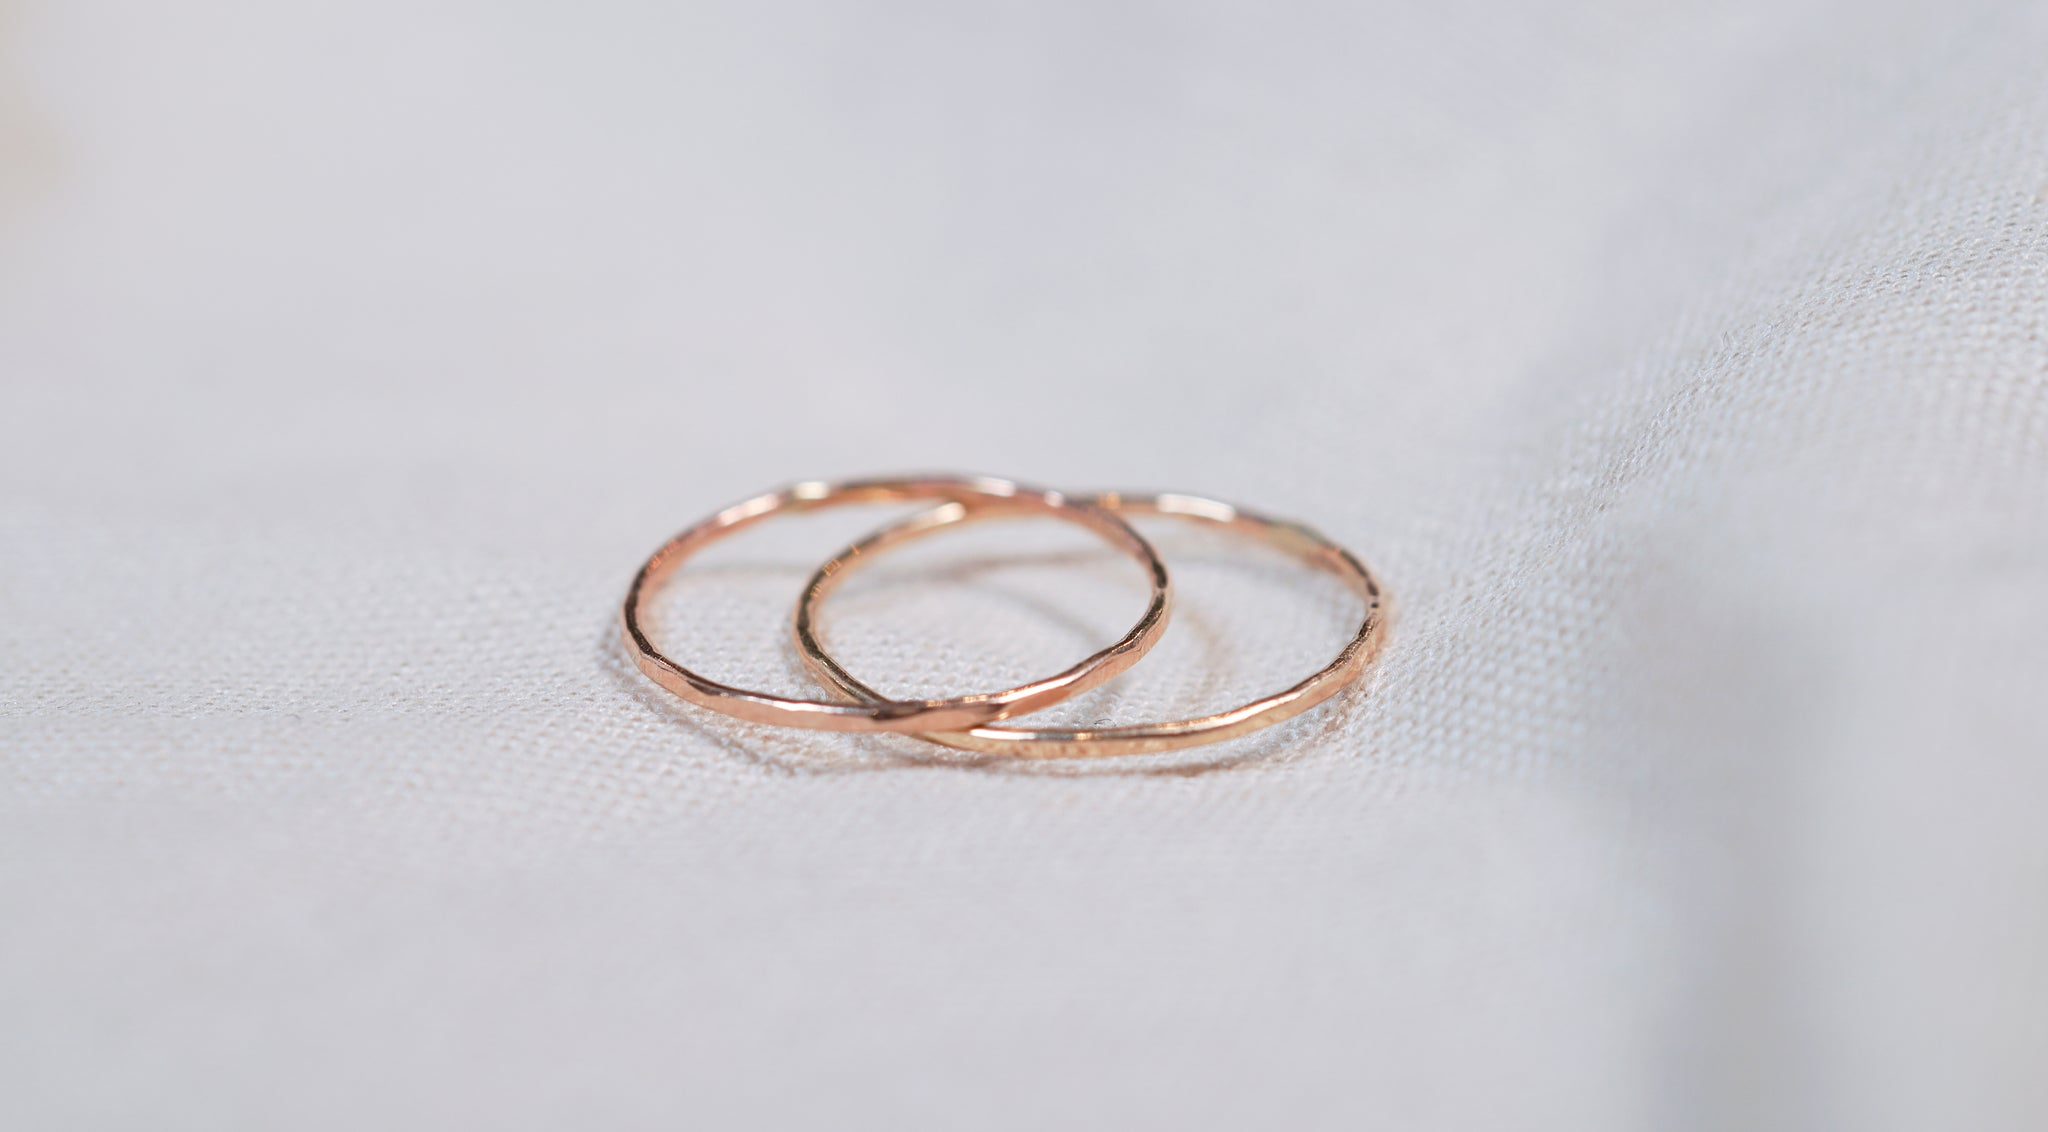 The Whisper Thin Hammered Ring